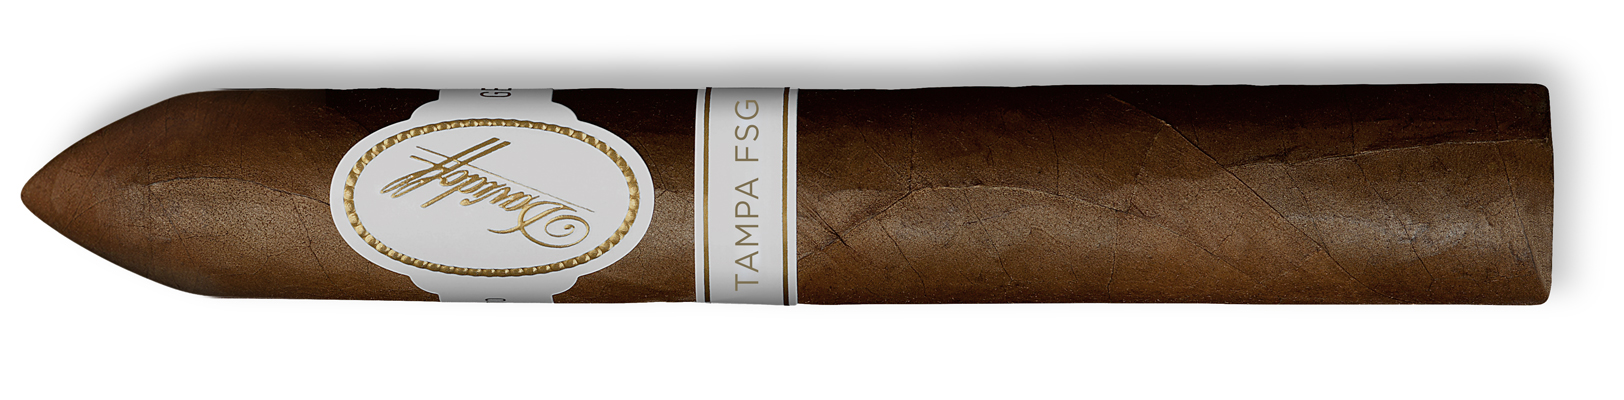 Davidoff Tampa FSG Exclusive Single